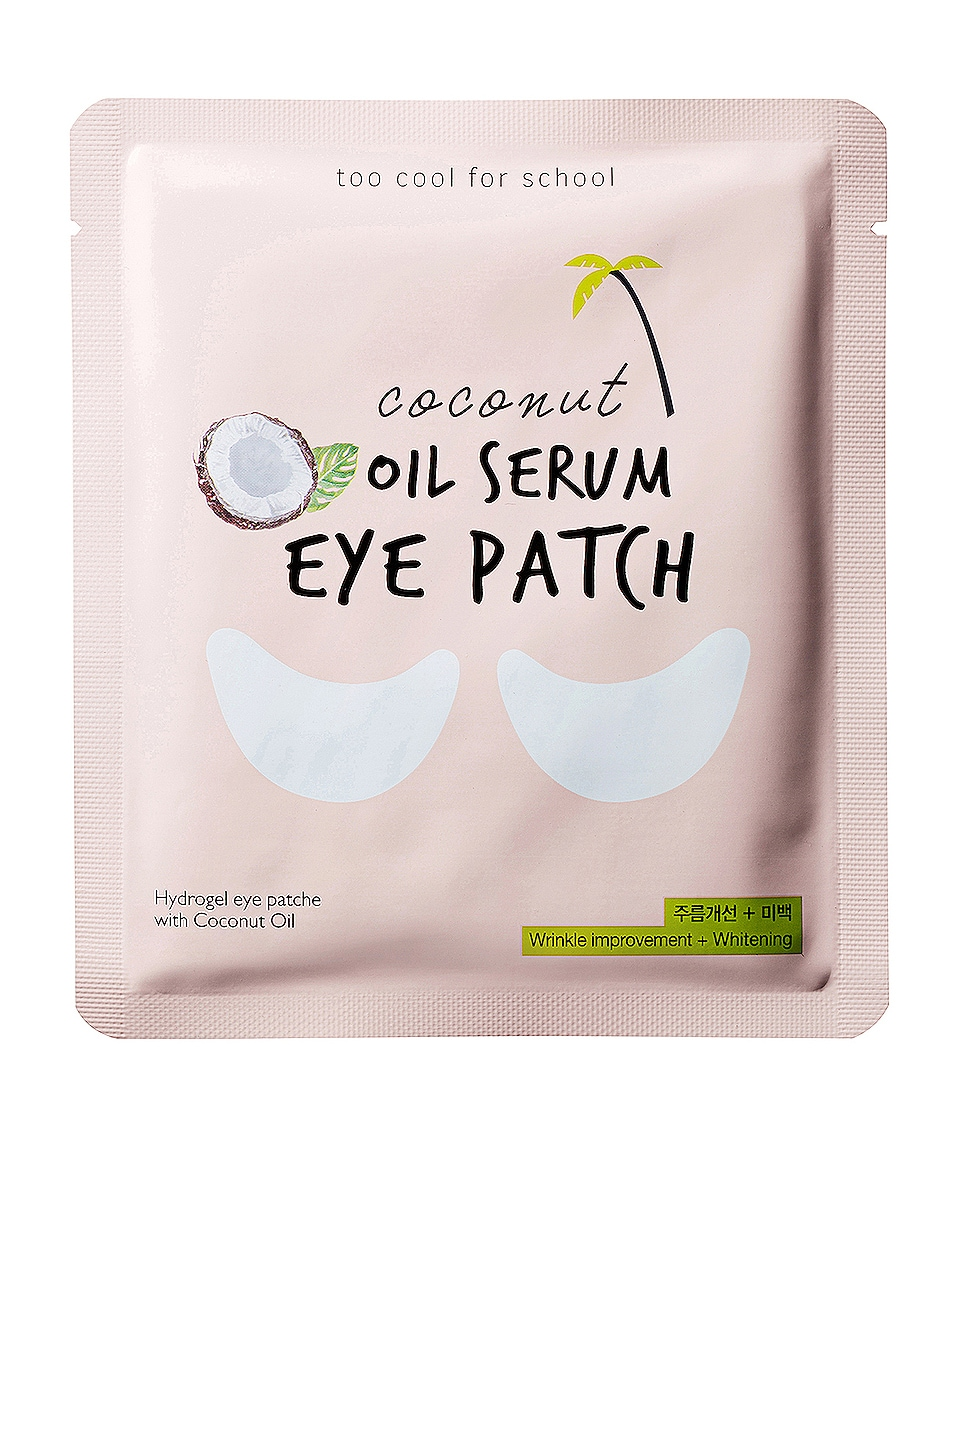 TOO COOL FOR SCHOOL COCOUT OIL SERUM EYE PATCH